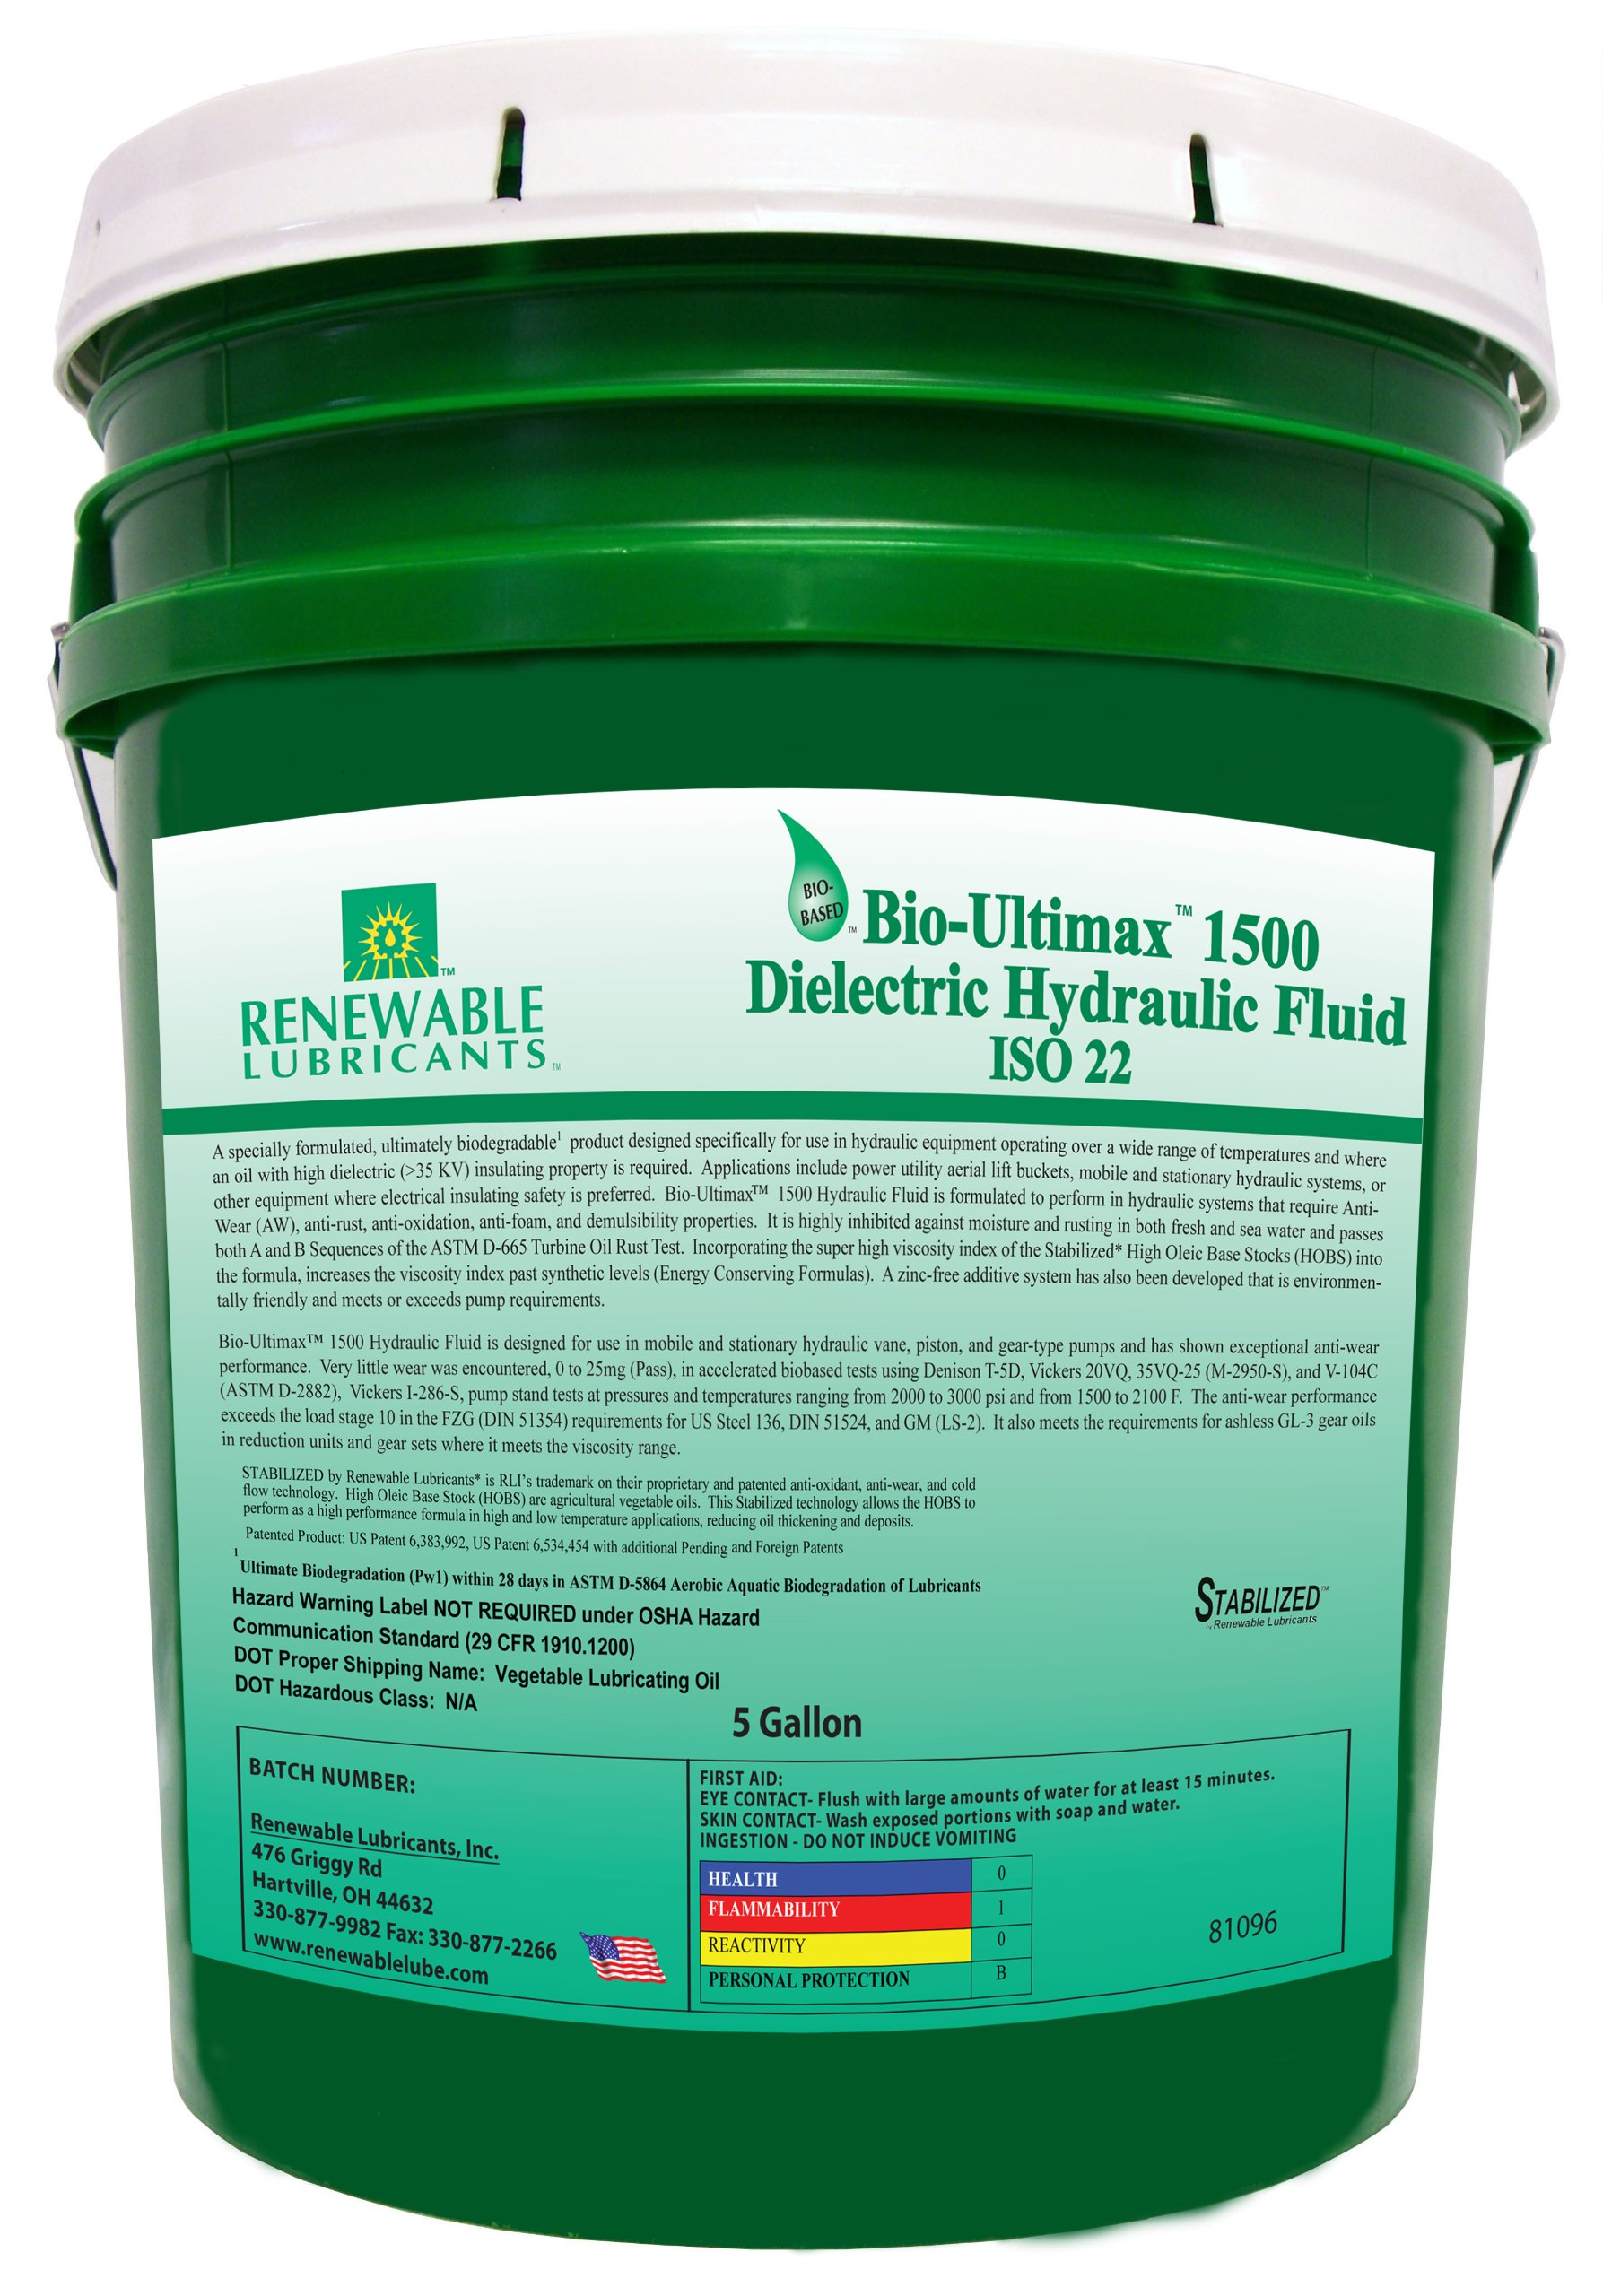 Renewable Lubricants Bio-Ultimax 1500 ISO 22 Dielectric Hydraulic Fluid, 5 Gallon Pail